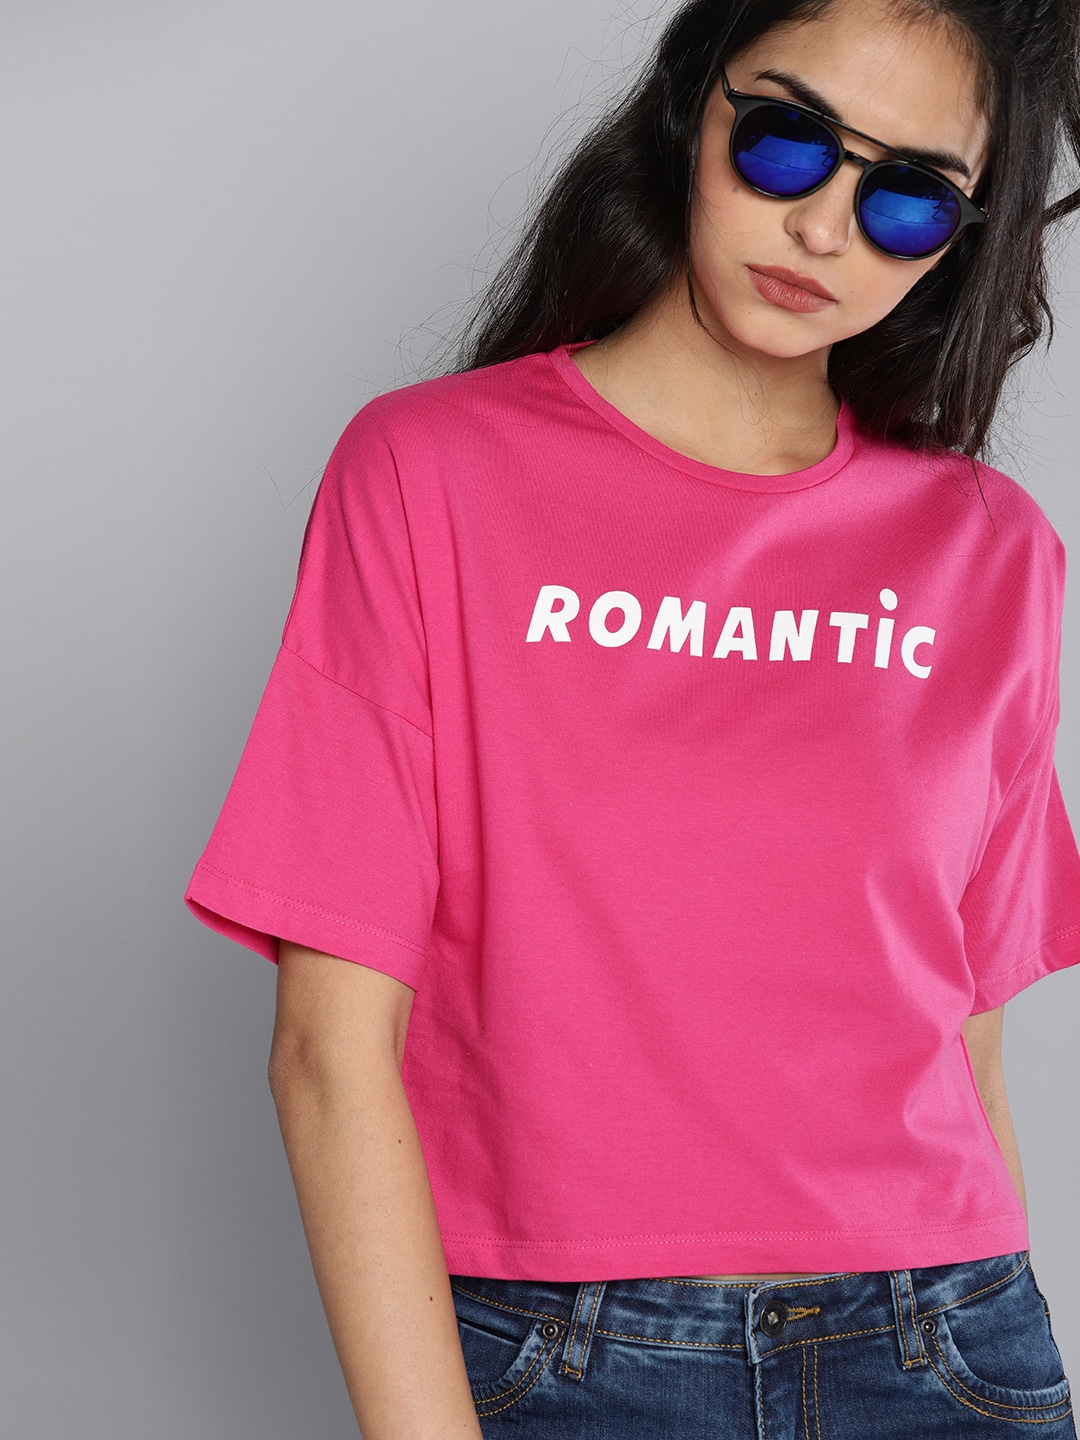 Funky T Shirts Online Shopping In India | Lixnet AG